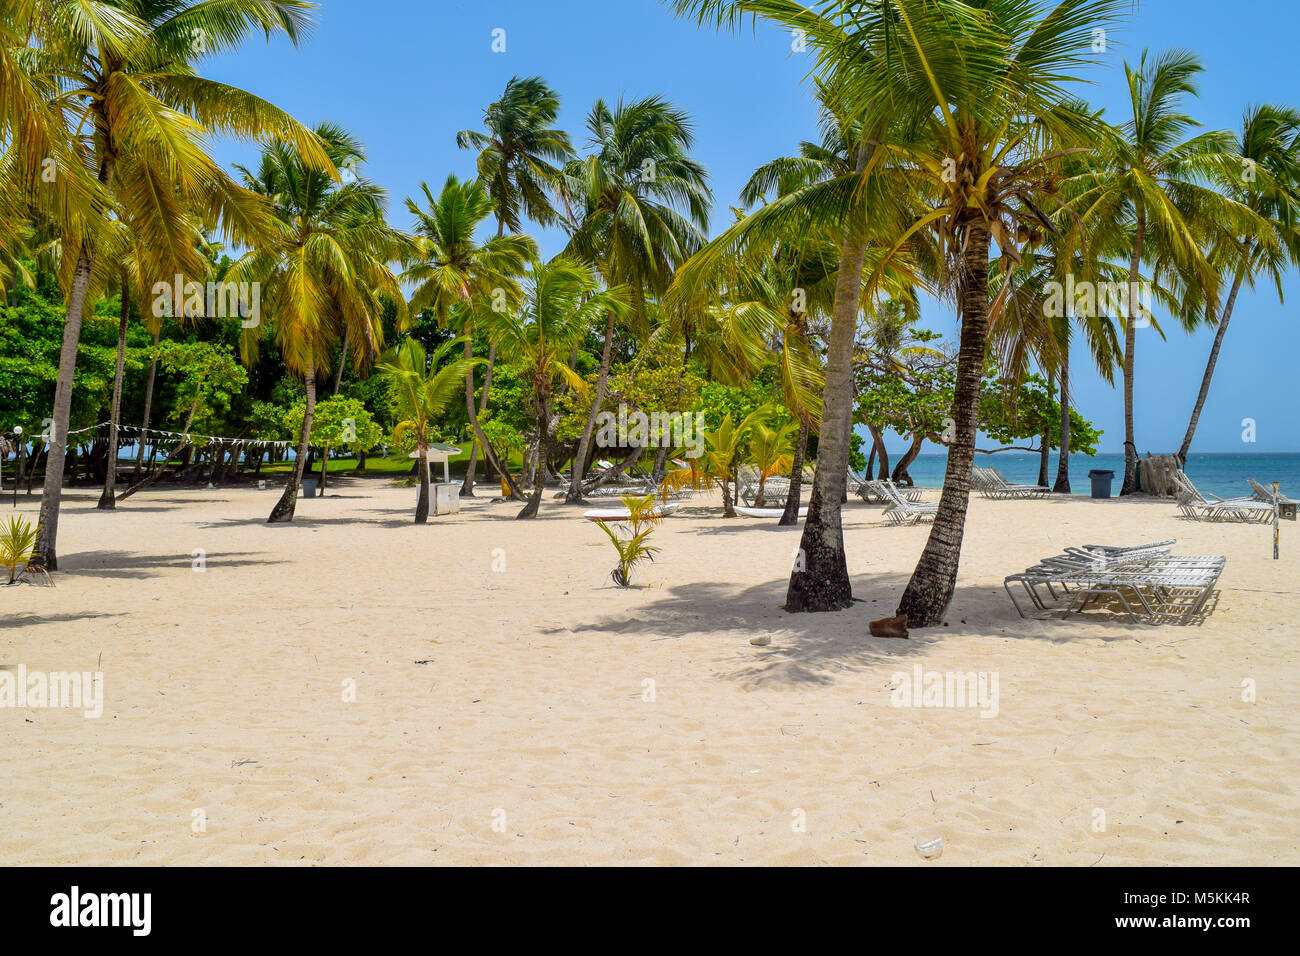 White beach with sunbeds, many palms, blue sky and turquoise ocean in the caribbean sea, Dominican Republic - Stock Image